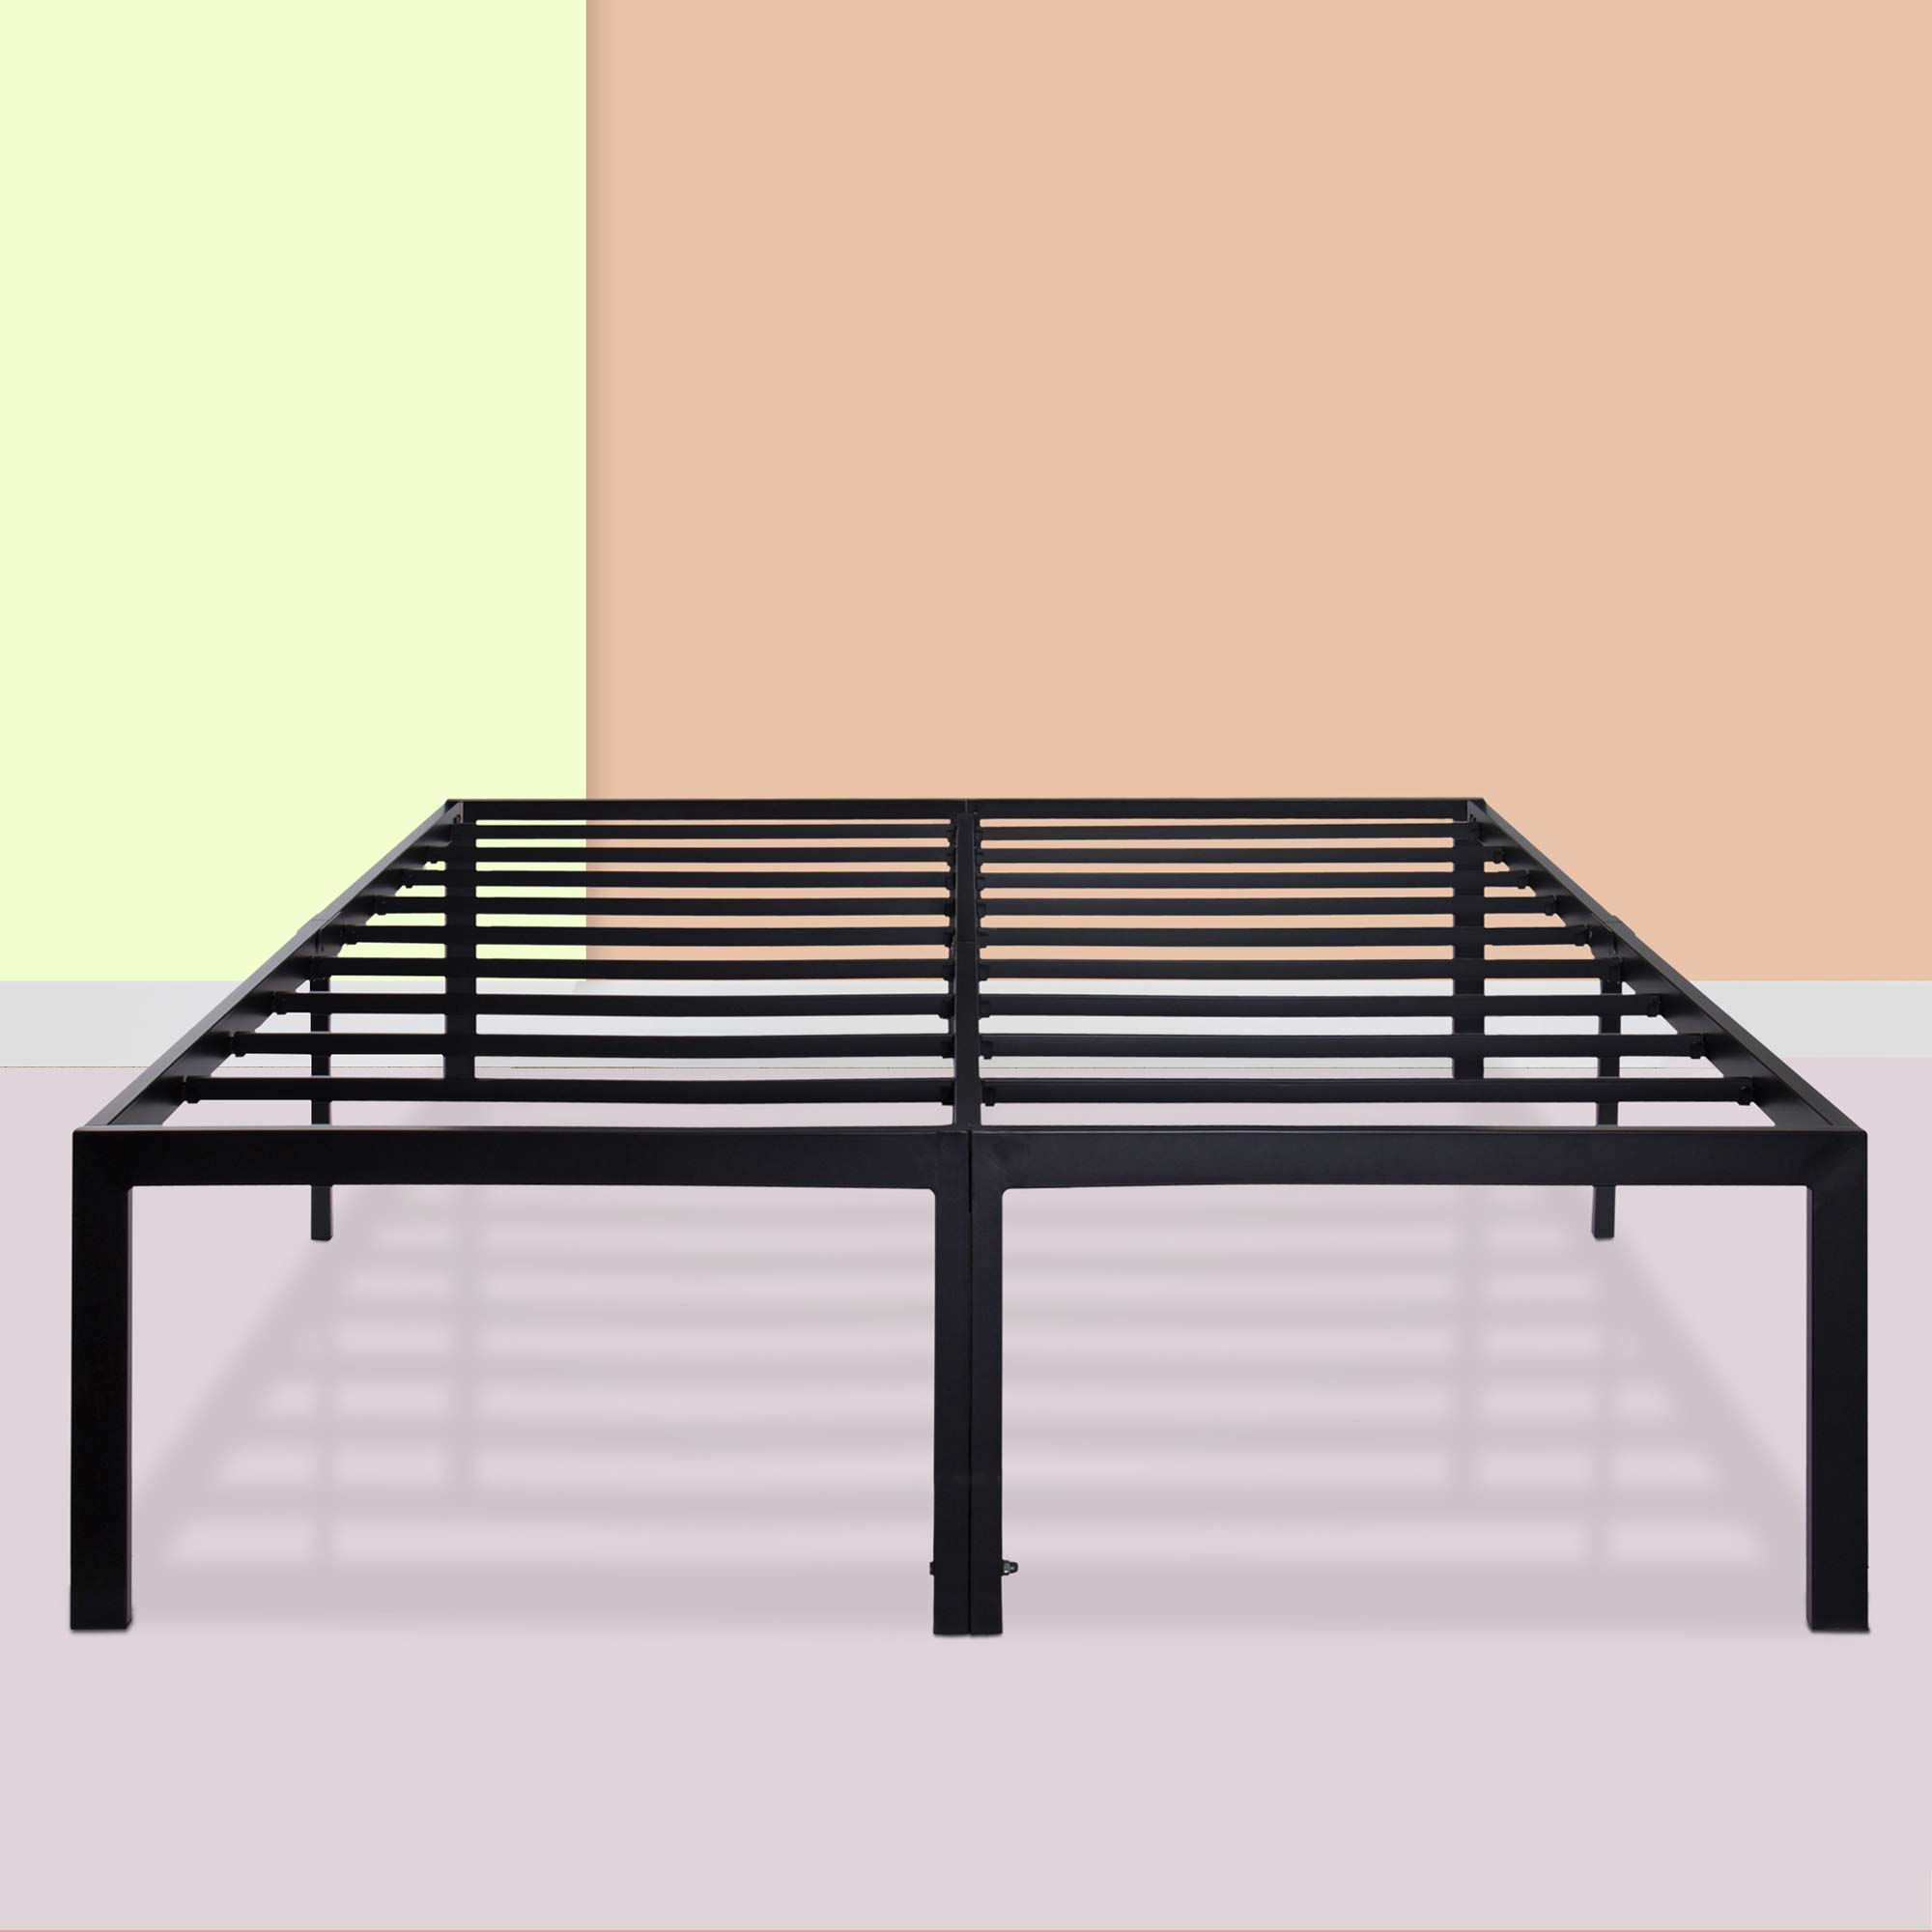 PrimaSleep 18 Inch Ultimate Strength High Profile Heavy Duty Steel Slat/ Anti-slip/ Extra Support/ Easy Assembly/ Mattress Foundation/ Noise Free/ No Box Spring Needed, Black  ,California King